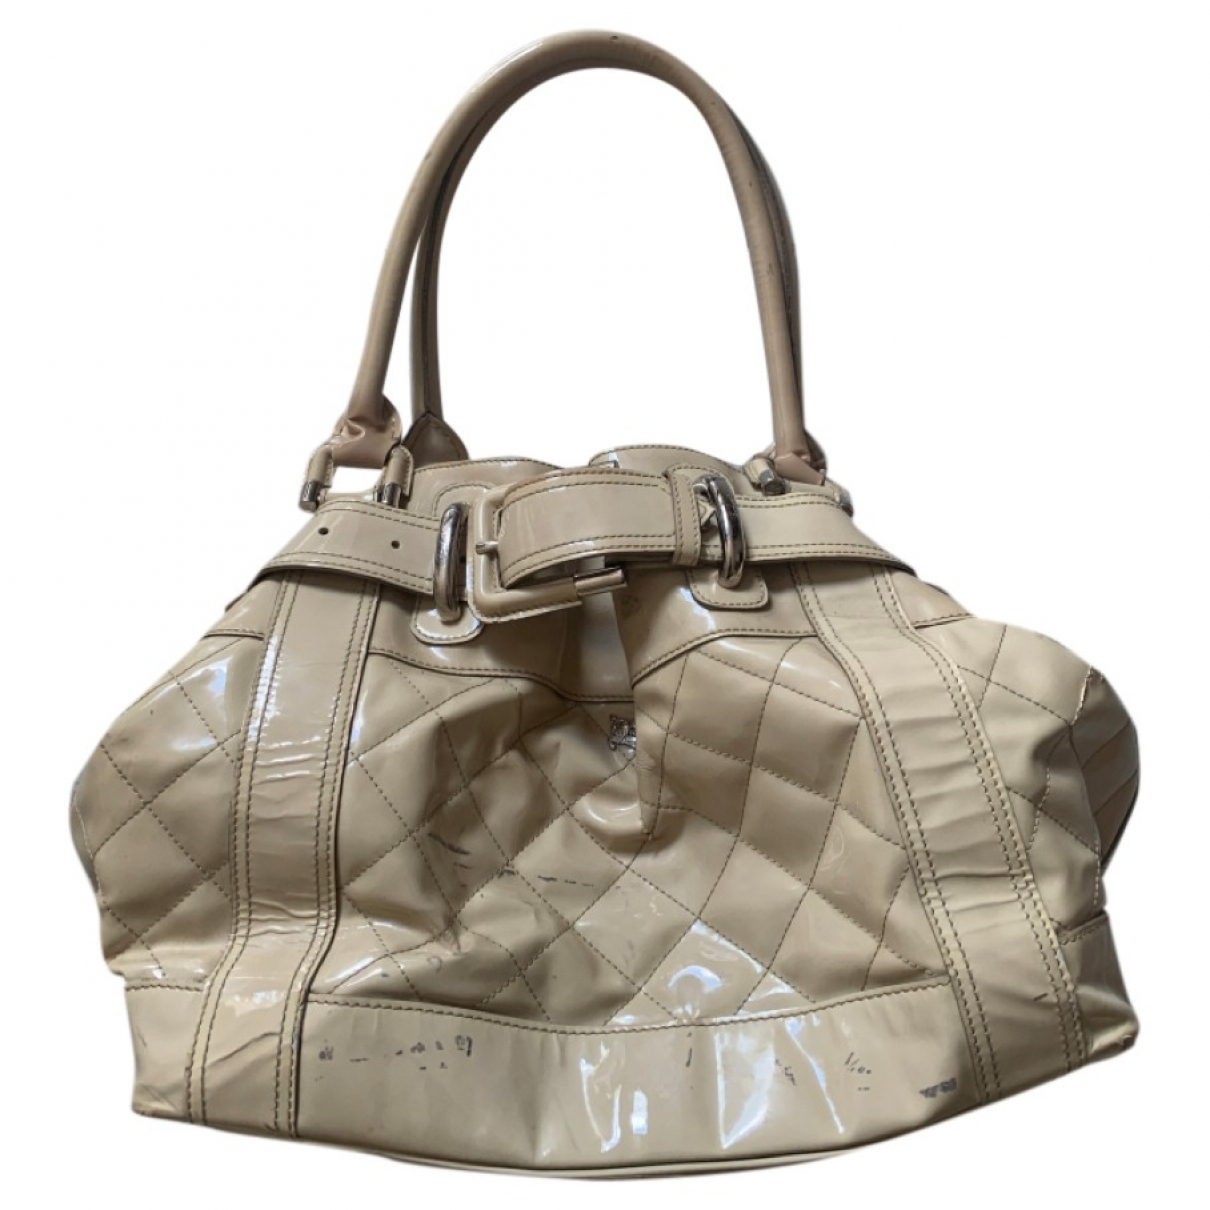 Burberry \N Beige Patent leather handbag for Women \N